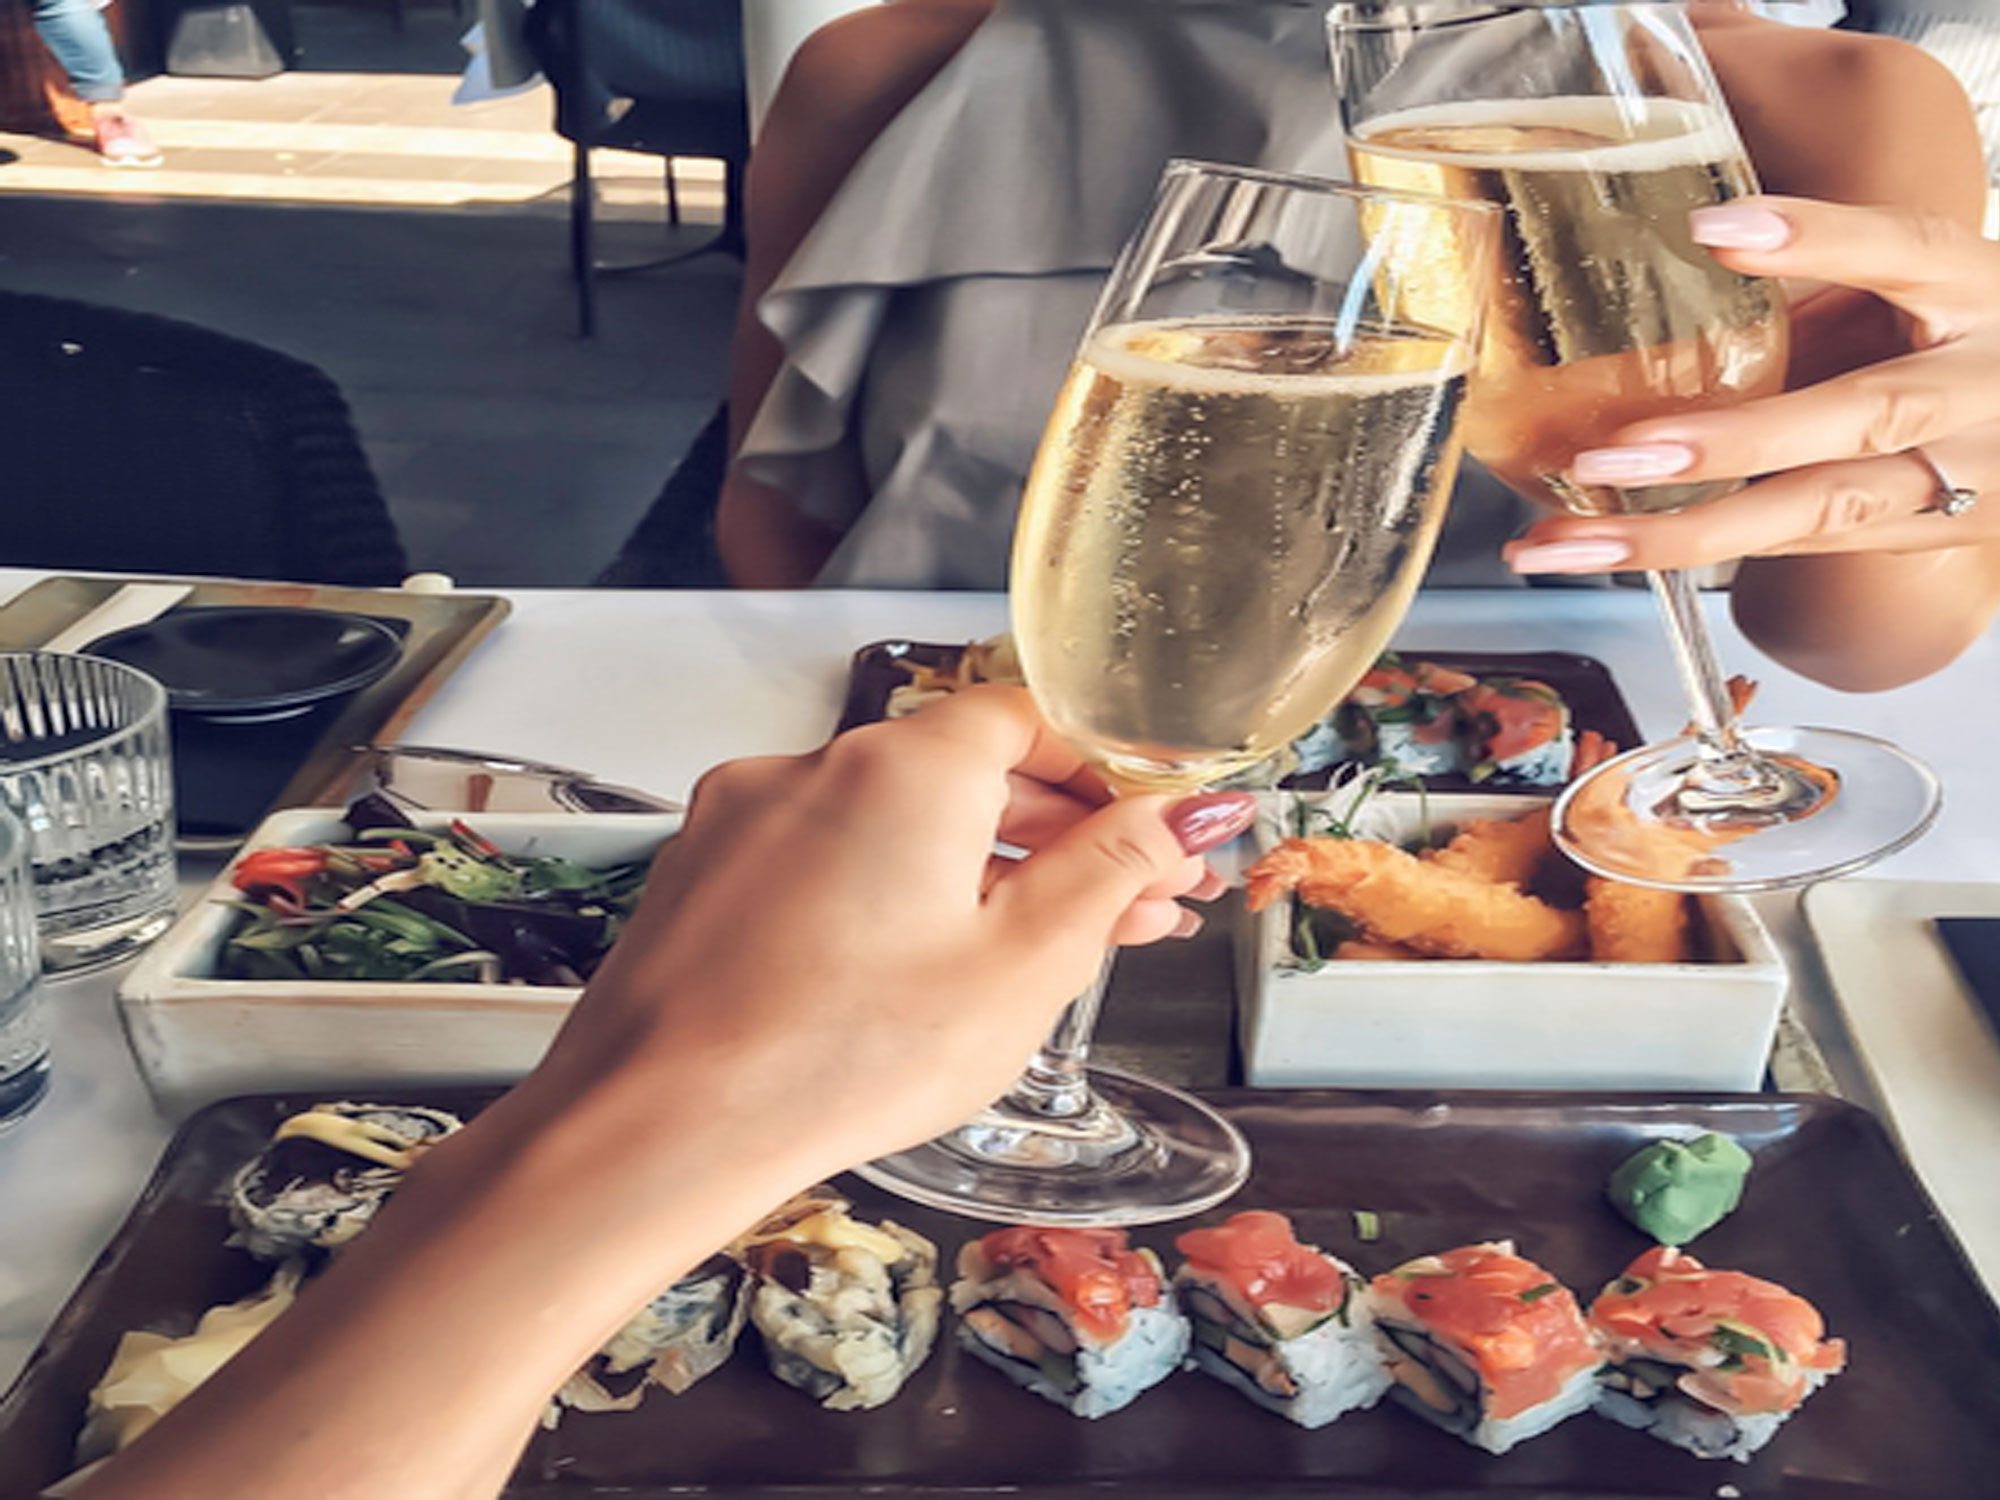 Ethnic foods are delicious, but it can be hard to find quality restaurants with truly ethnic dishes. Take a look at some of the best places to eat and drink in San Francisco to help narrow it down!